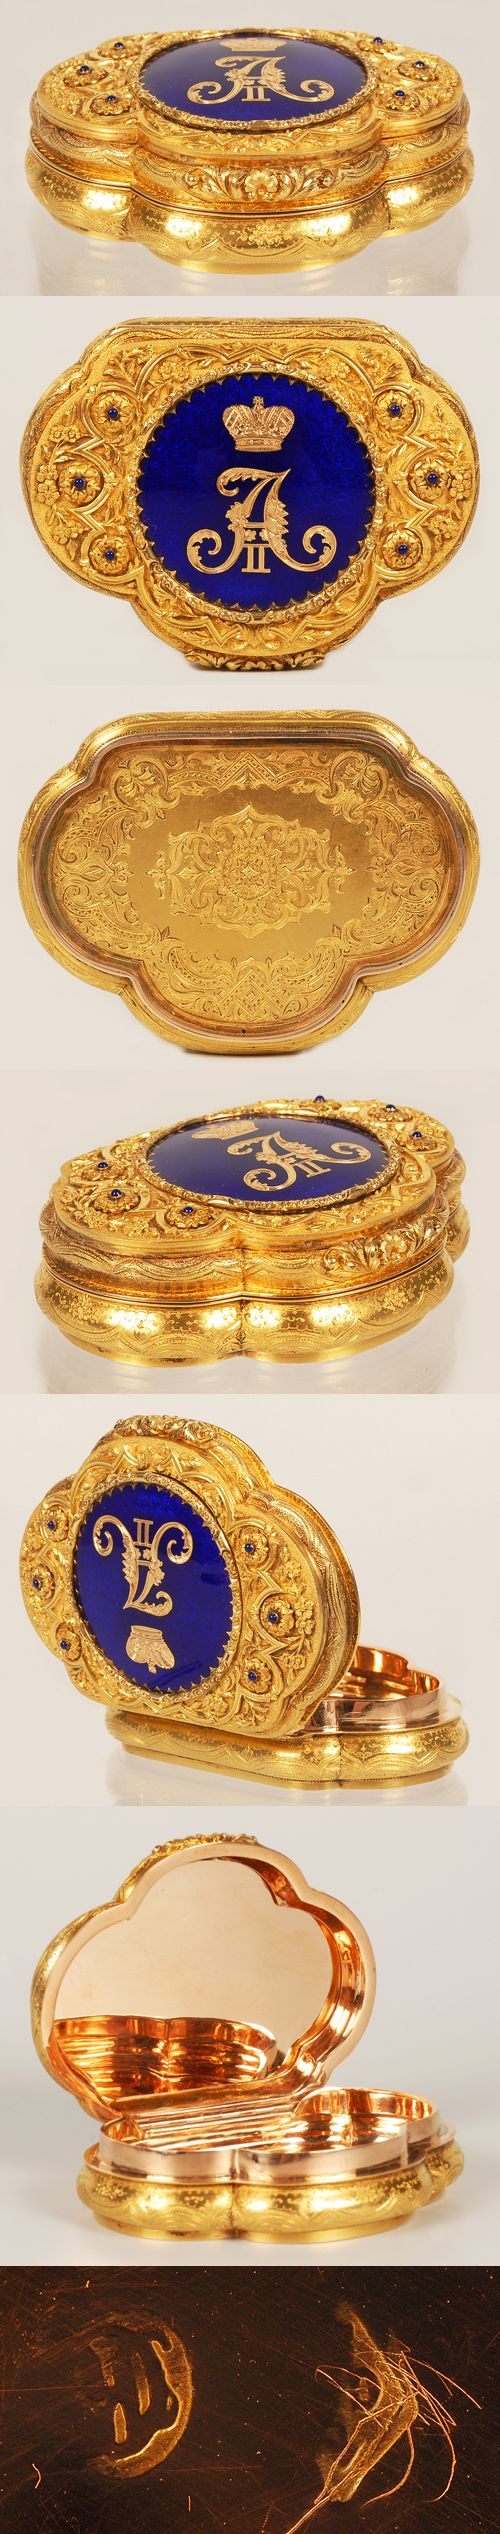 Gold Alexander II Snuff Presentation Box #antique #vintage #box